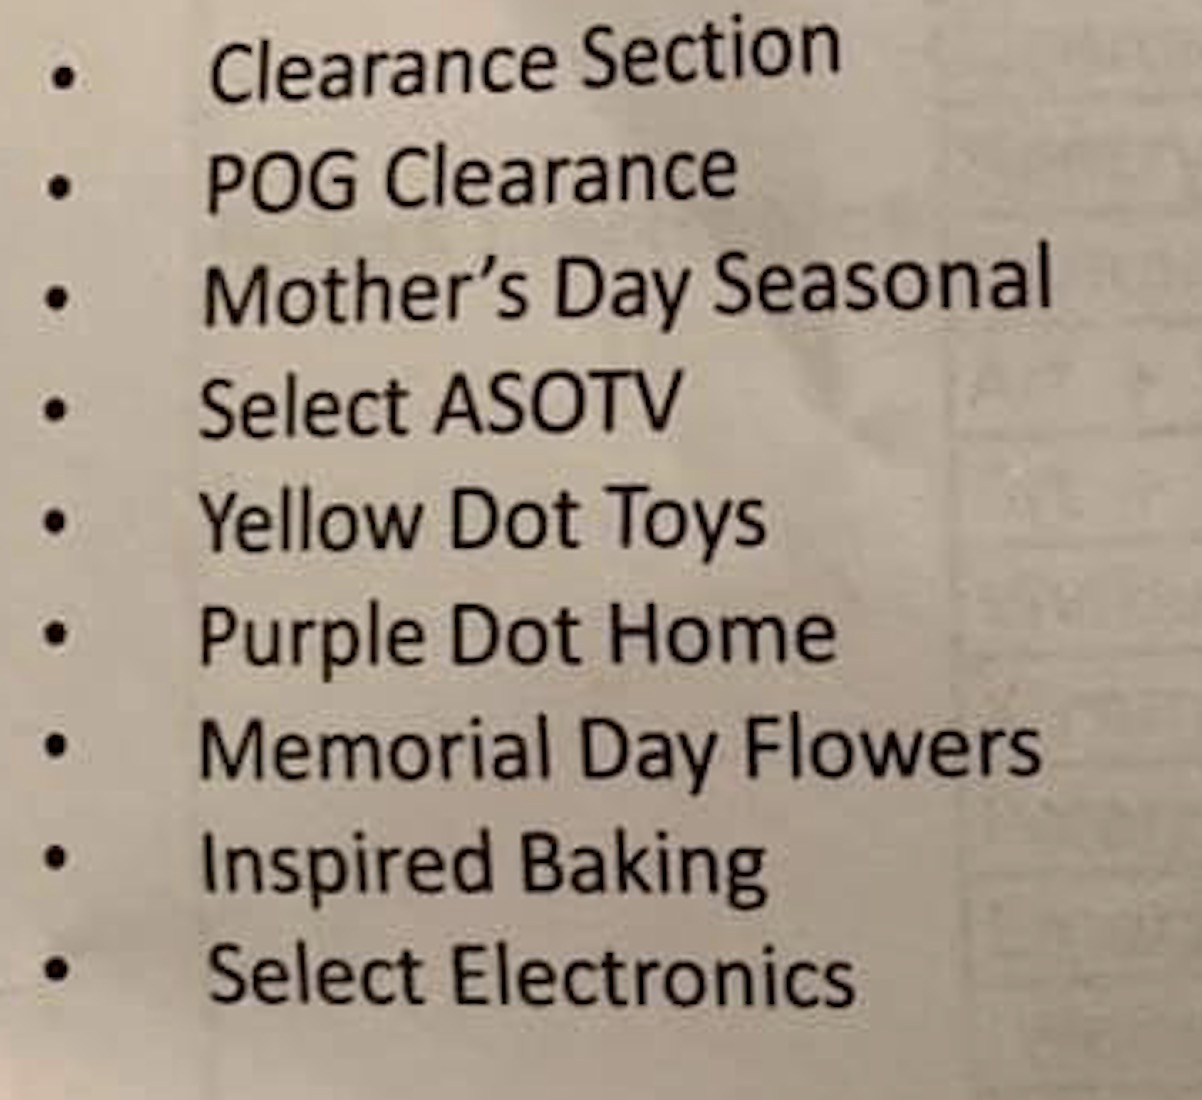 5/31 - 6/2 Dollar General Clearance Event